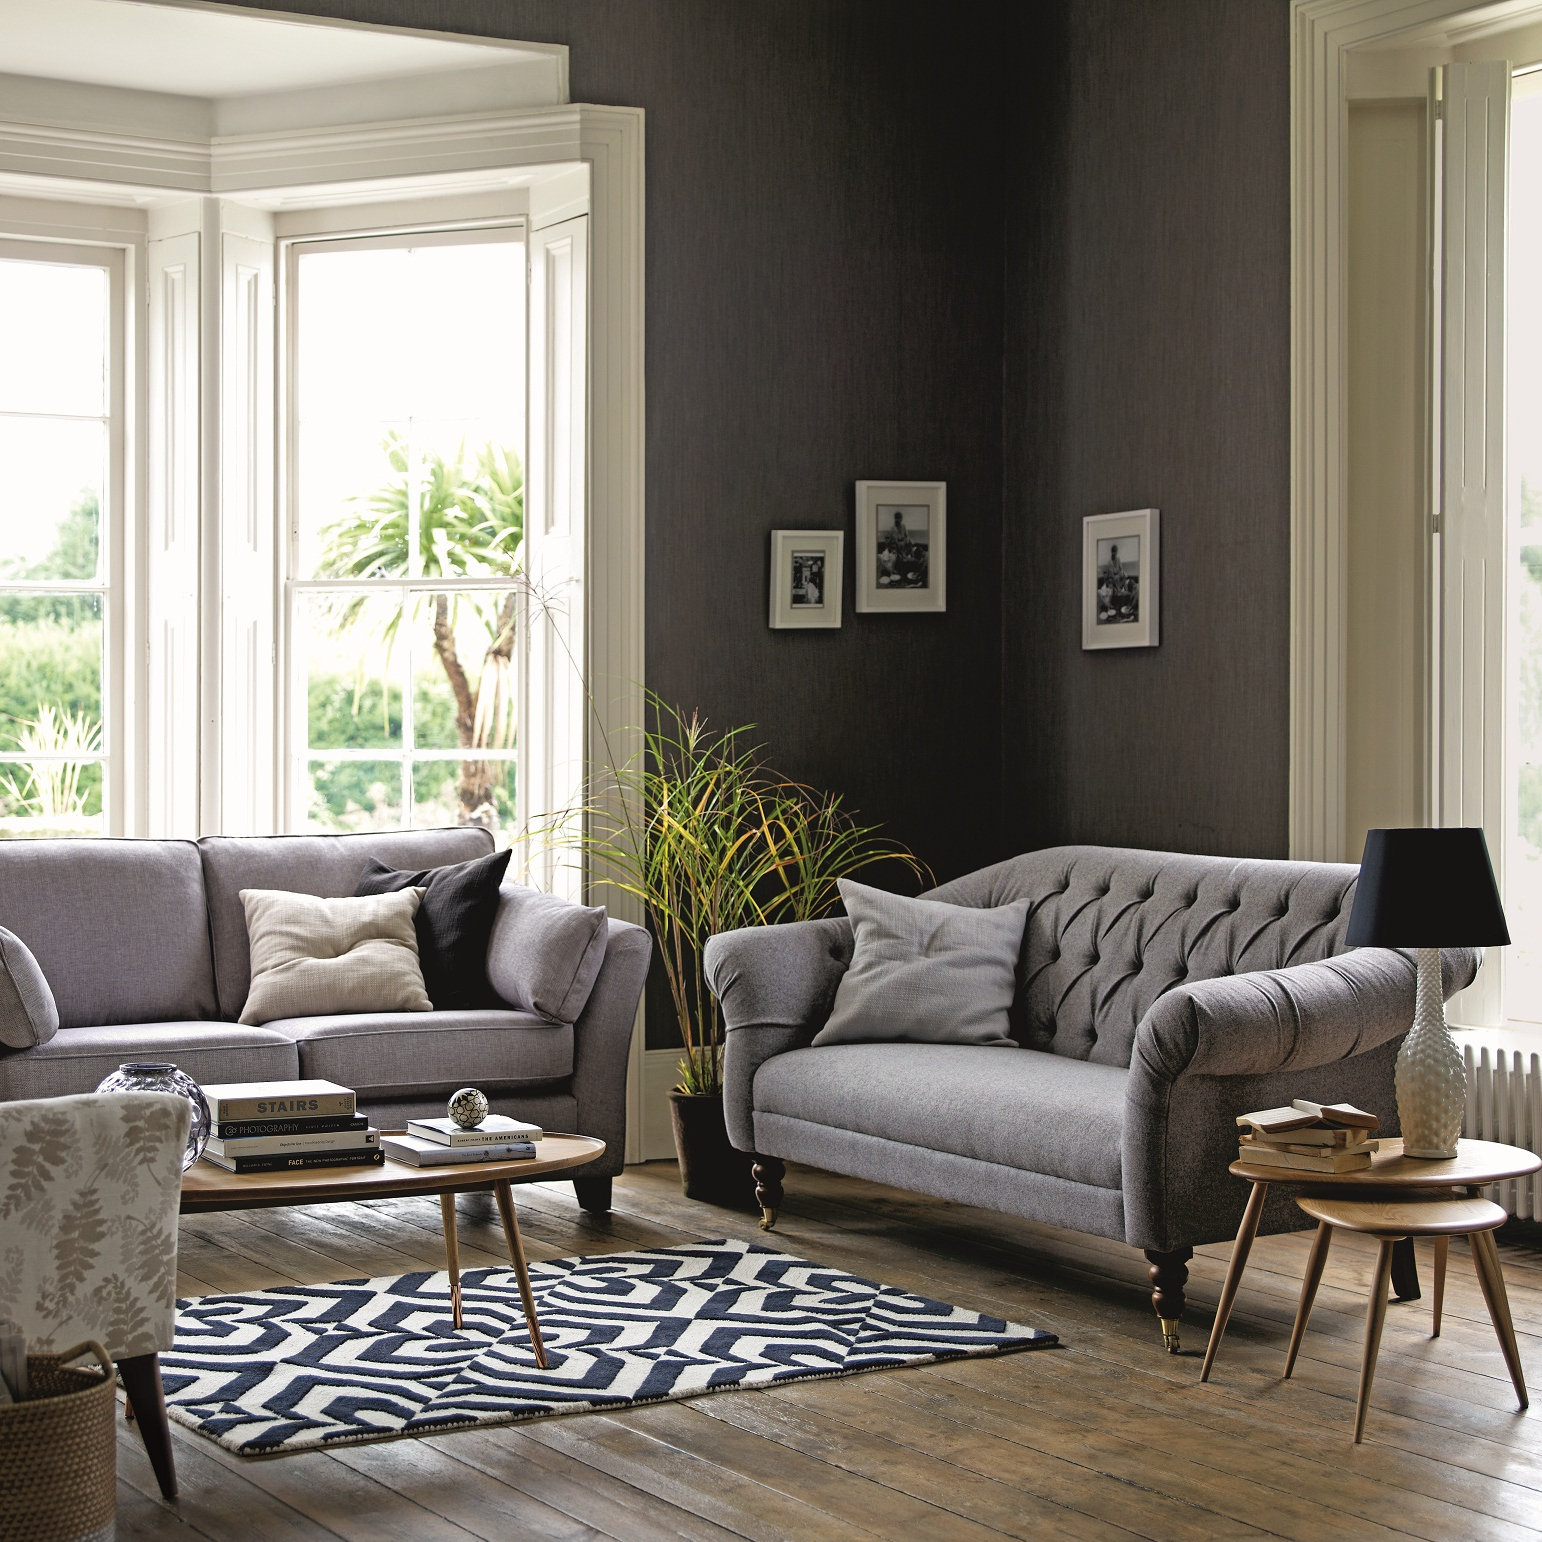 Decorate your living room with matching grey sofas and liven up the